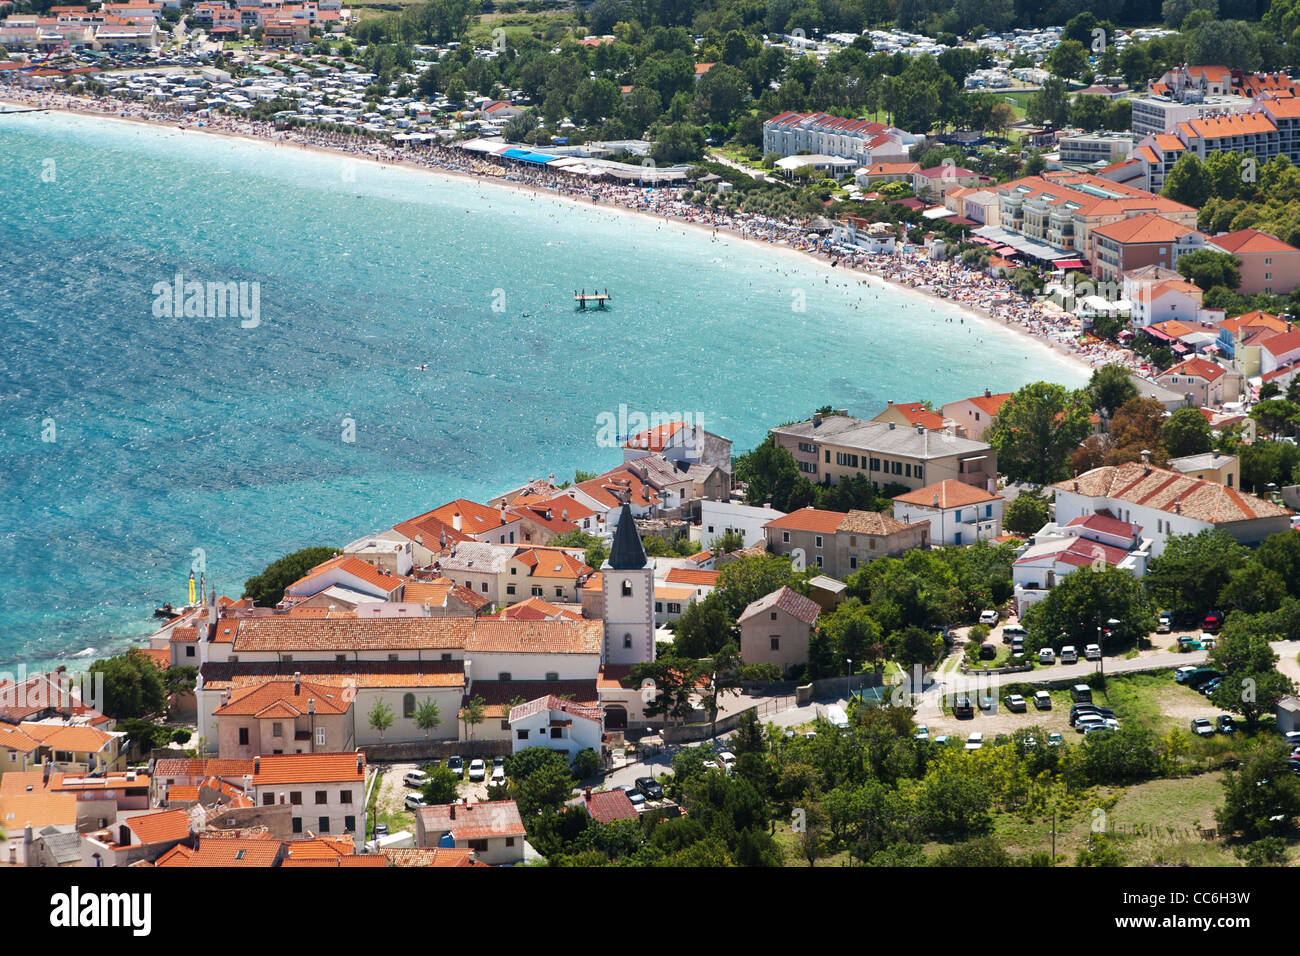 the city Baska on island Krk - Croatia - Stock Image